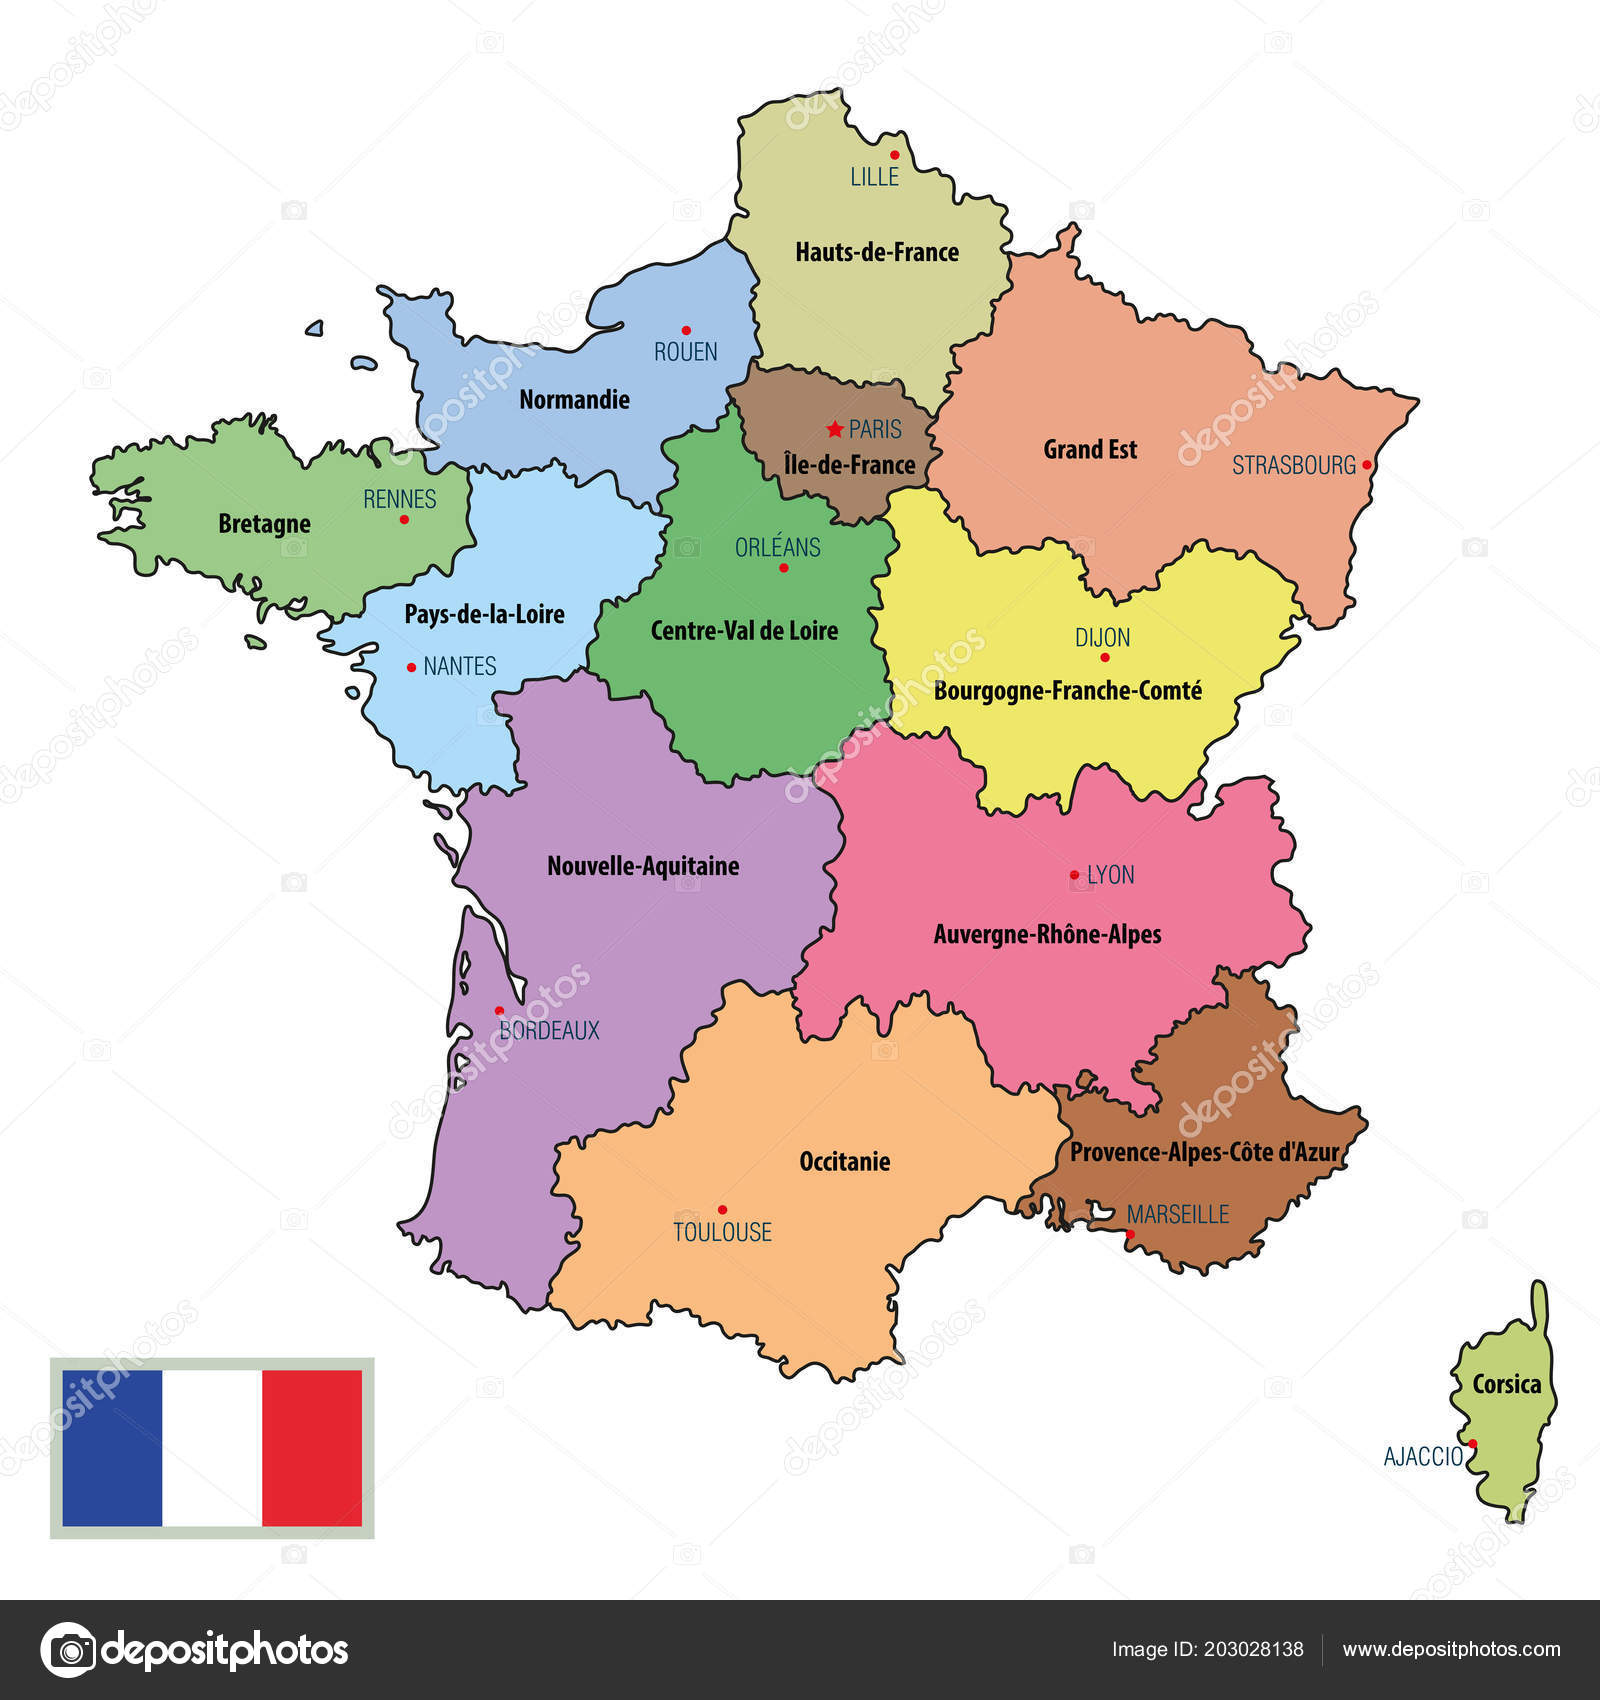 Image of: Vector Highly Detailed Political Map France Regions Capitals All Elements Stock Vector C Zlatovlaska2008 203028138